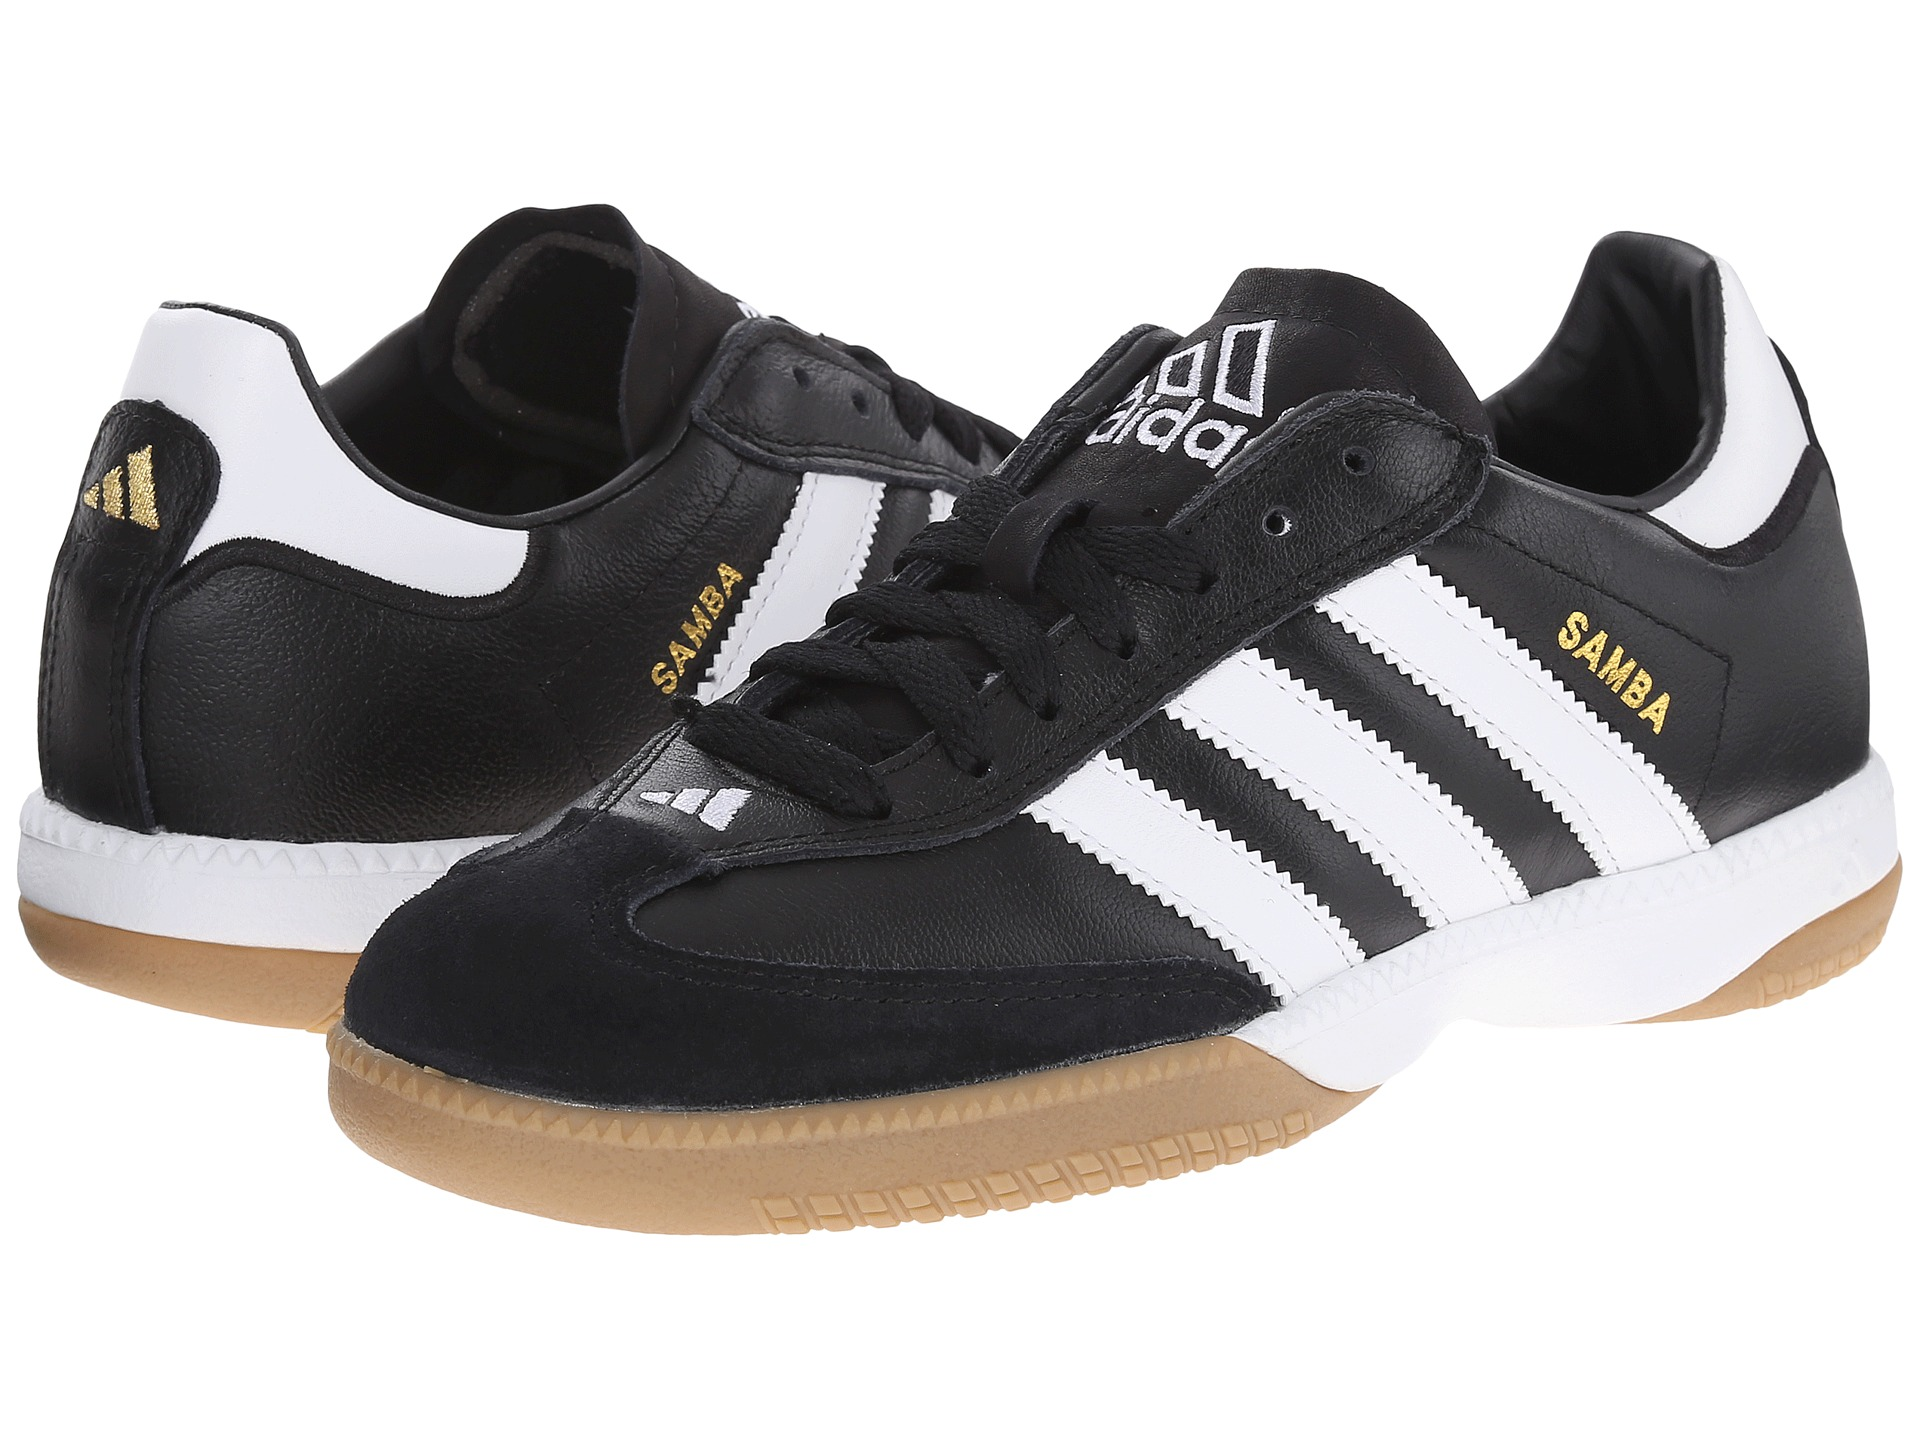 edd047e679c Buy adidas samba soccer shoes   OFF56% Discounted